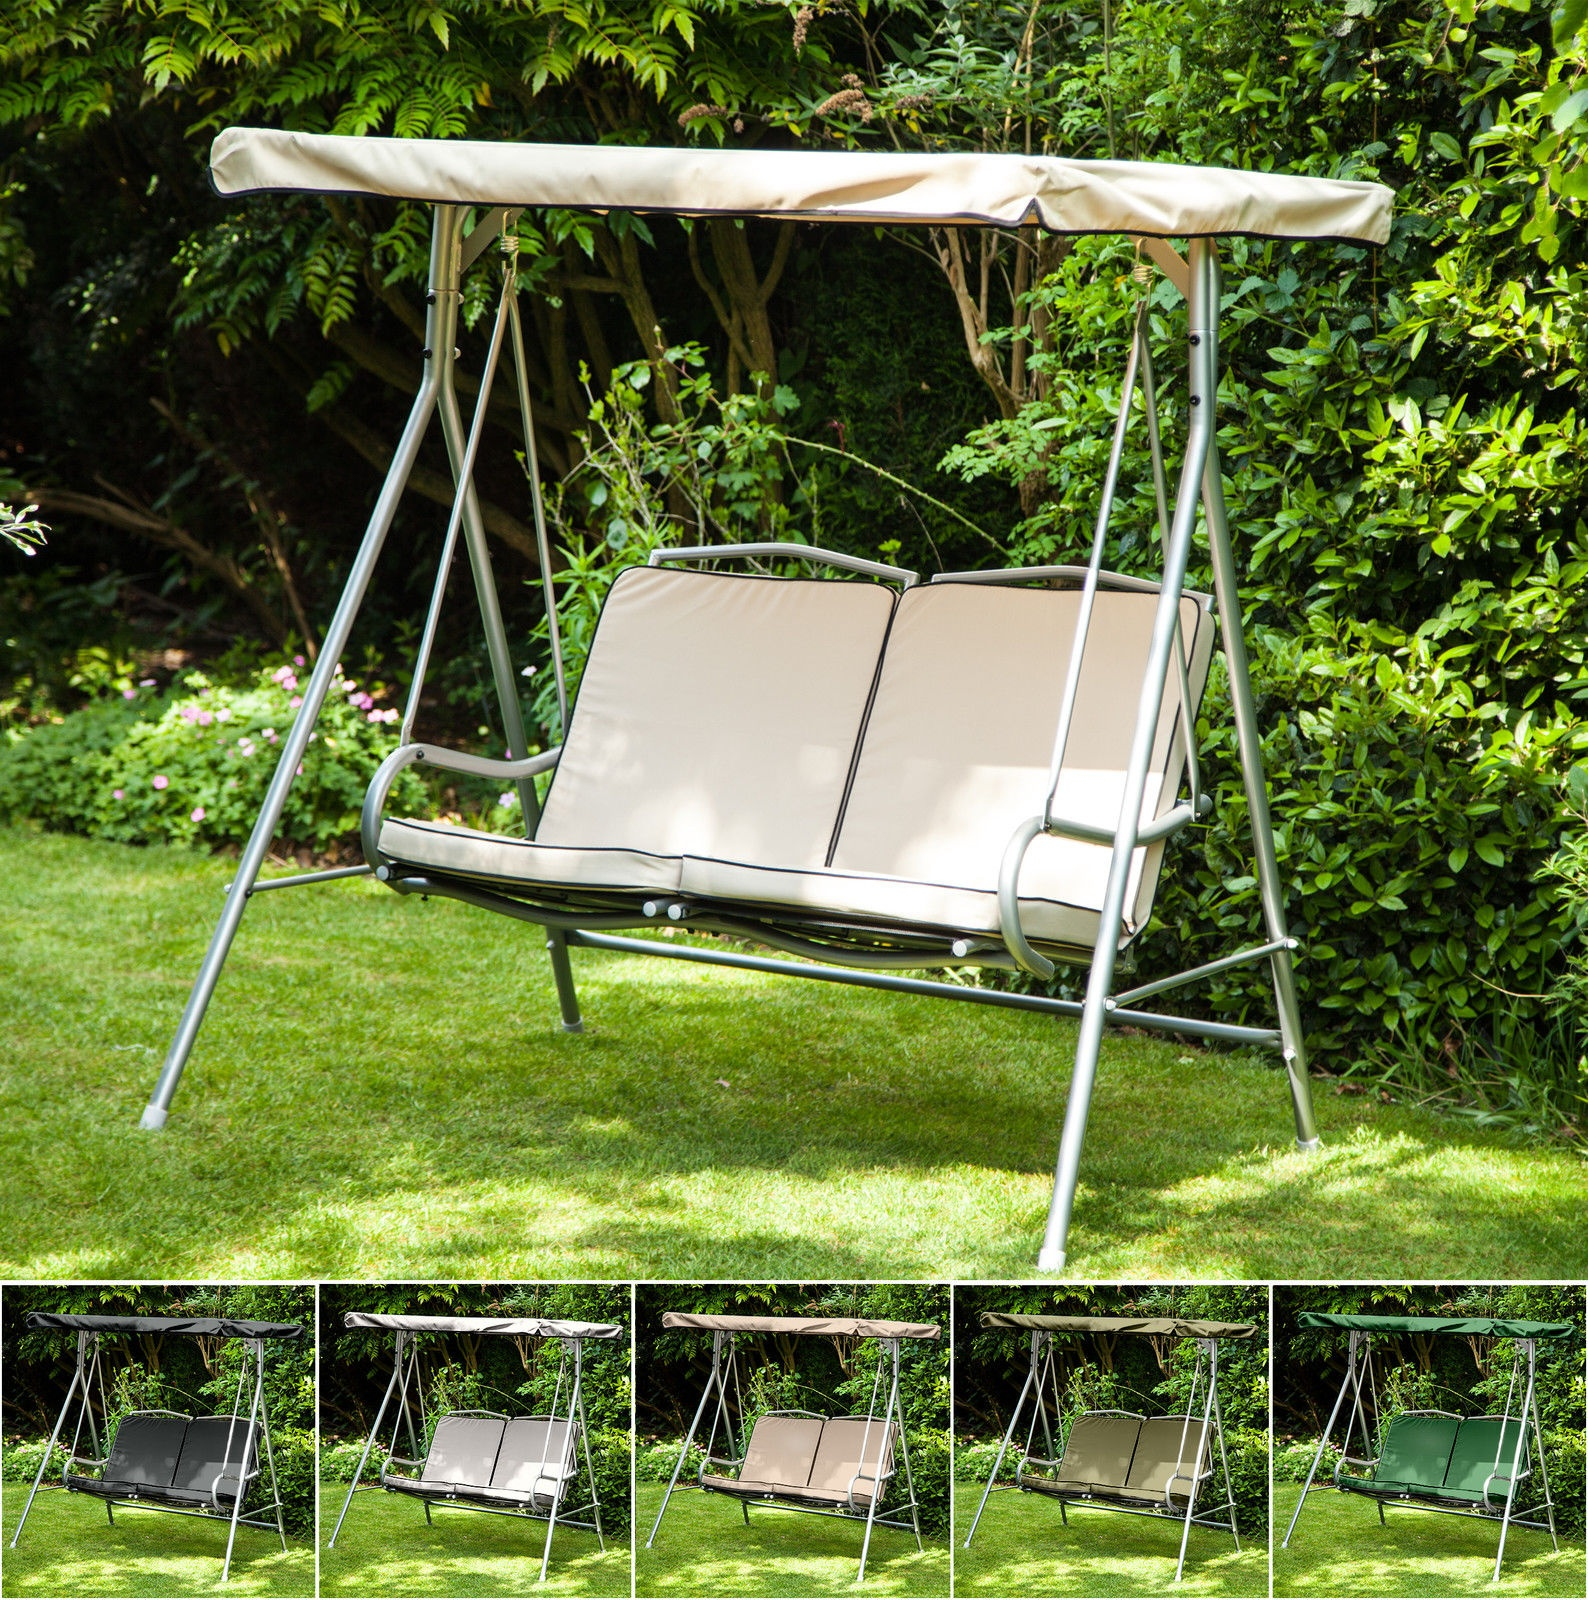 Details & Replacement Canopy Cushions For Argos Malibu 2 Seater Garden Swing ...